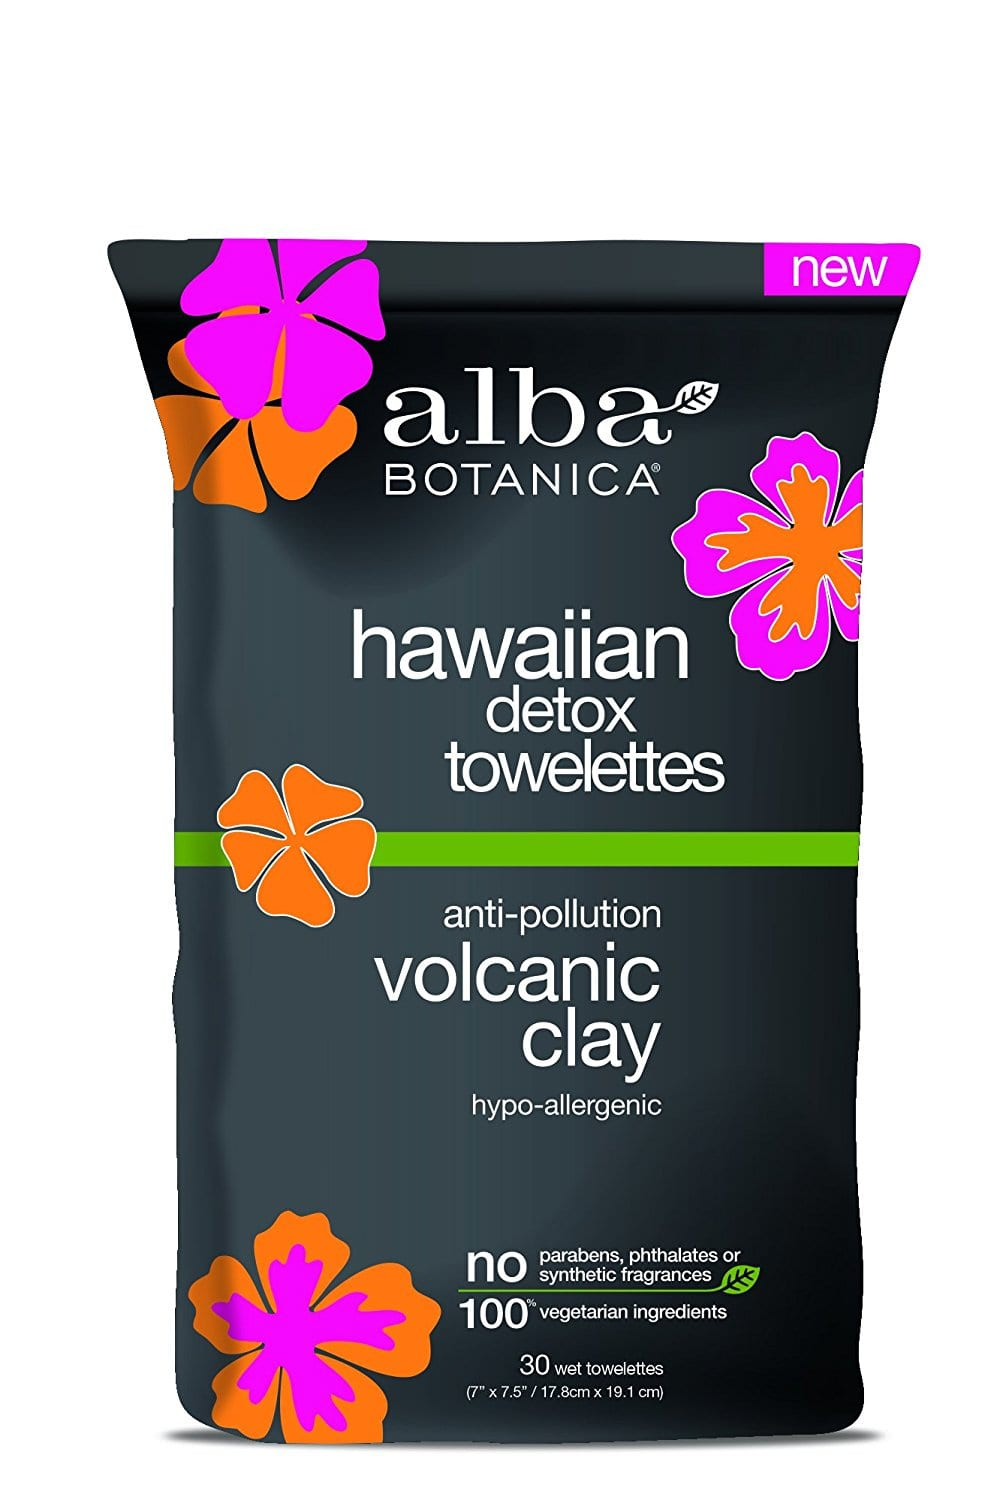 Add-on Item: 30-Count Alba Botanica Hawaiian Detox Towelettes $1.55